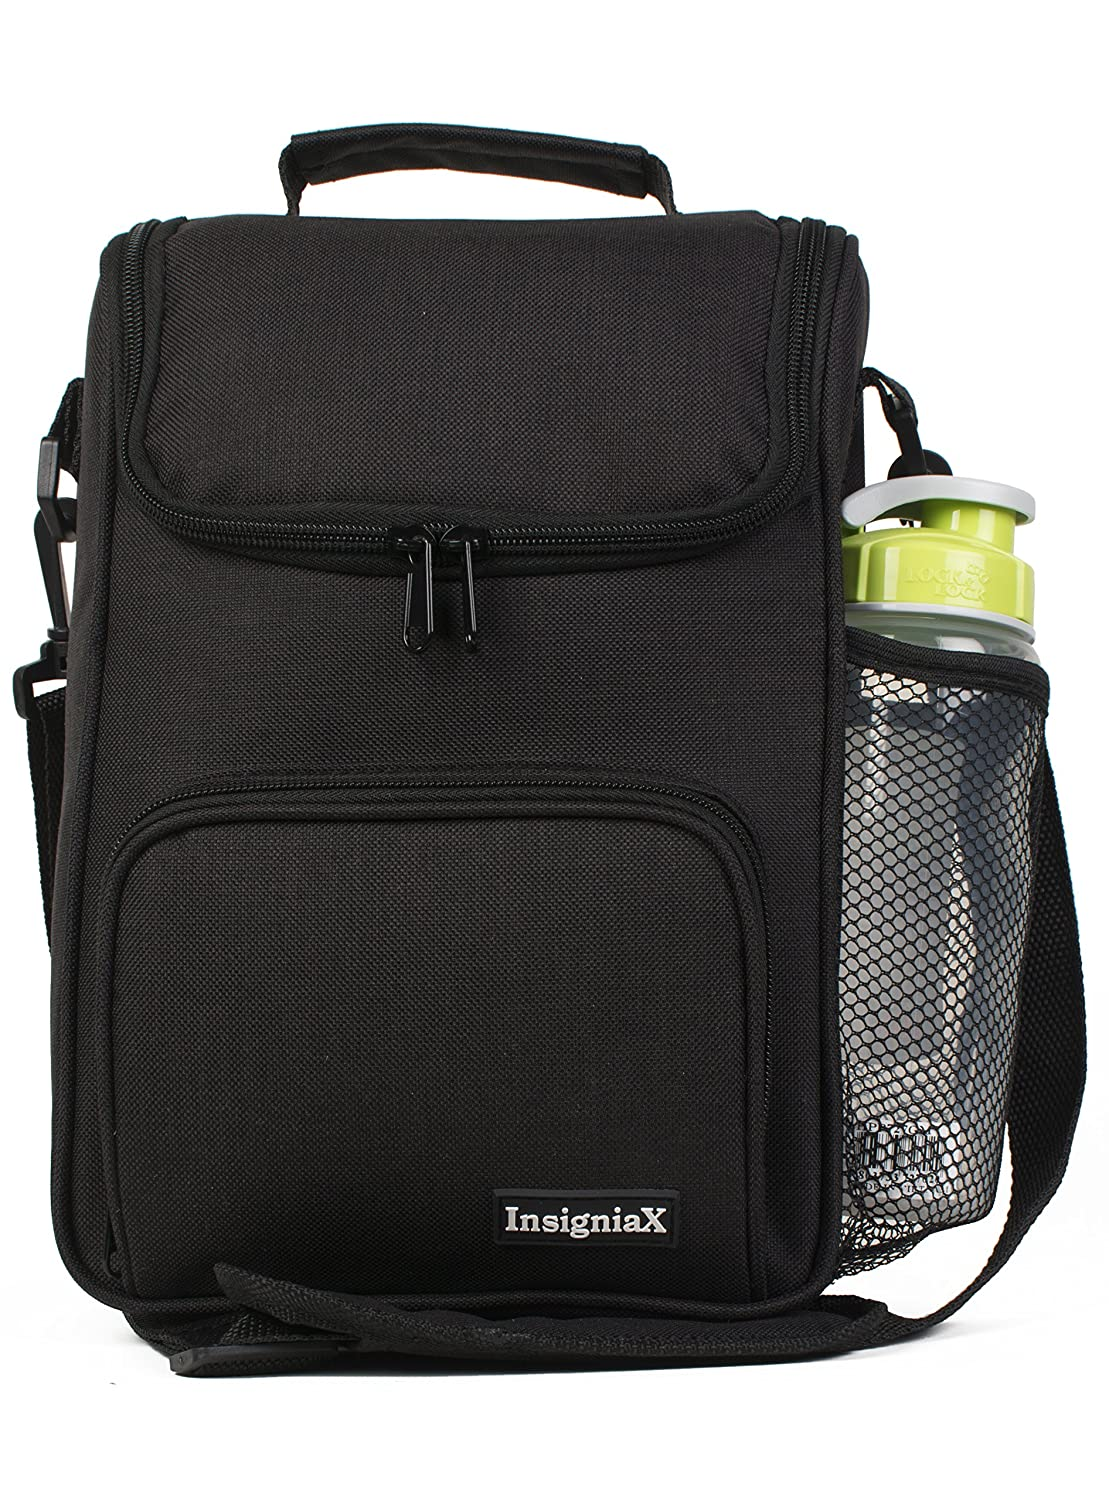 7.9 Standard, Black 11.8 x W InsigniaX Crossbody Lunch Bag Cool Back to School Lunch Box//Cooler//for Adult Women Men Work Girls Boys with Shoulder Strap Water Bottle Holder H 3.9 x L